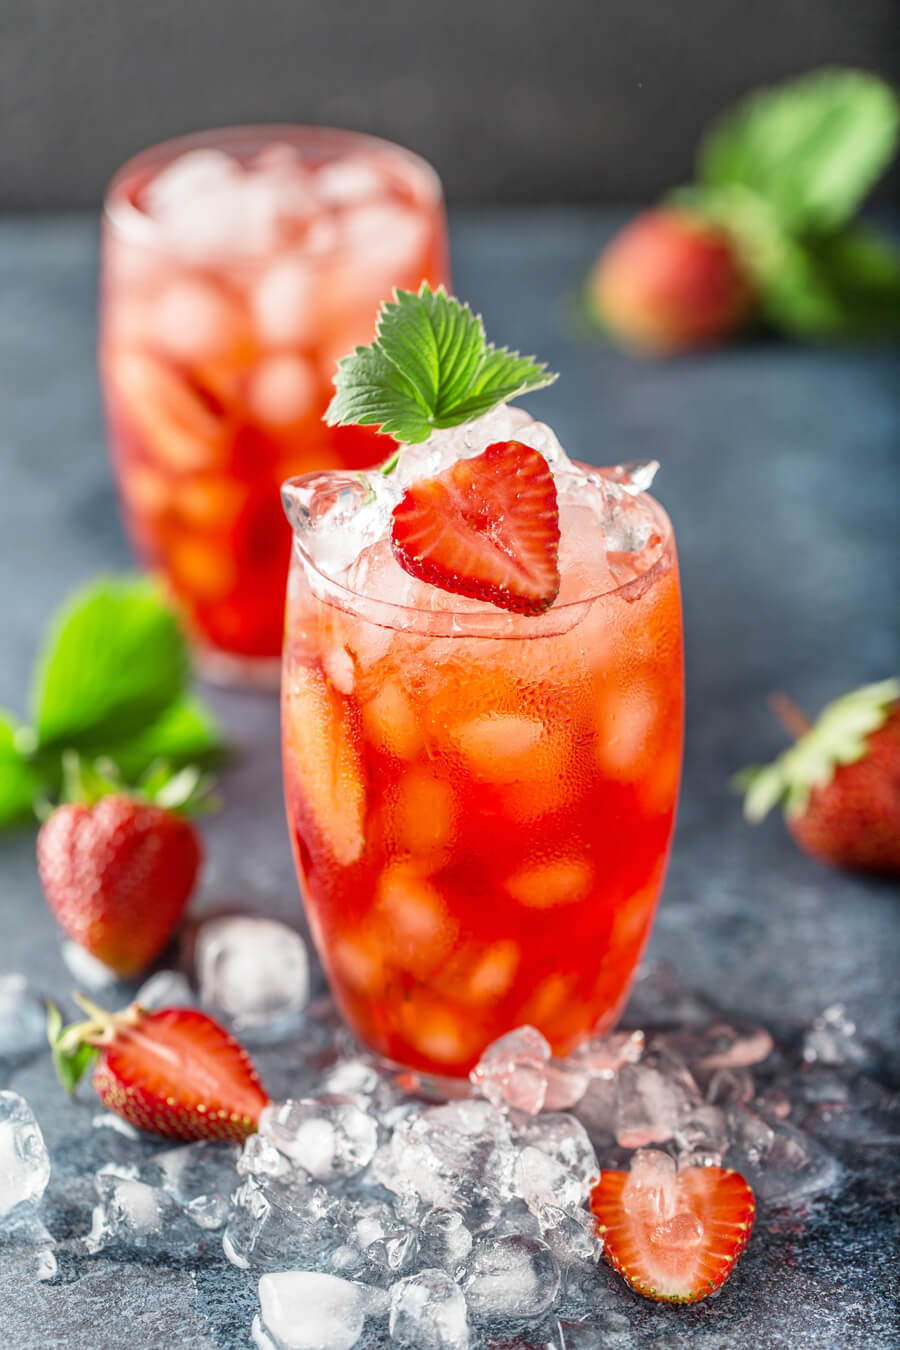 This That Mint Cook Rum Buy Cocktails Strawberry